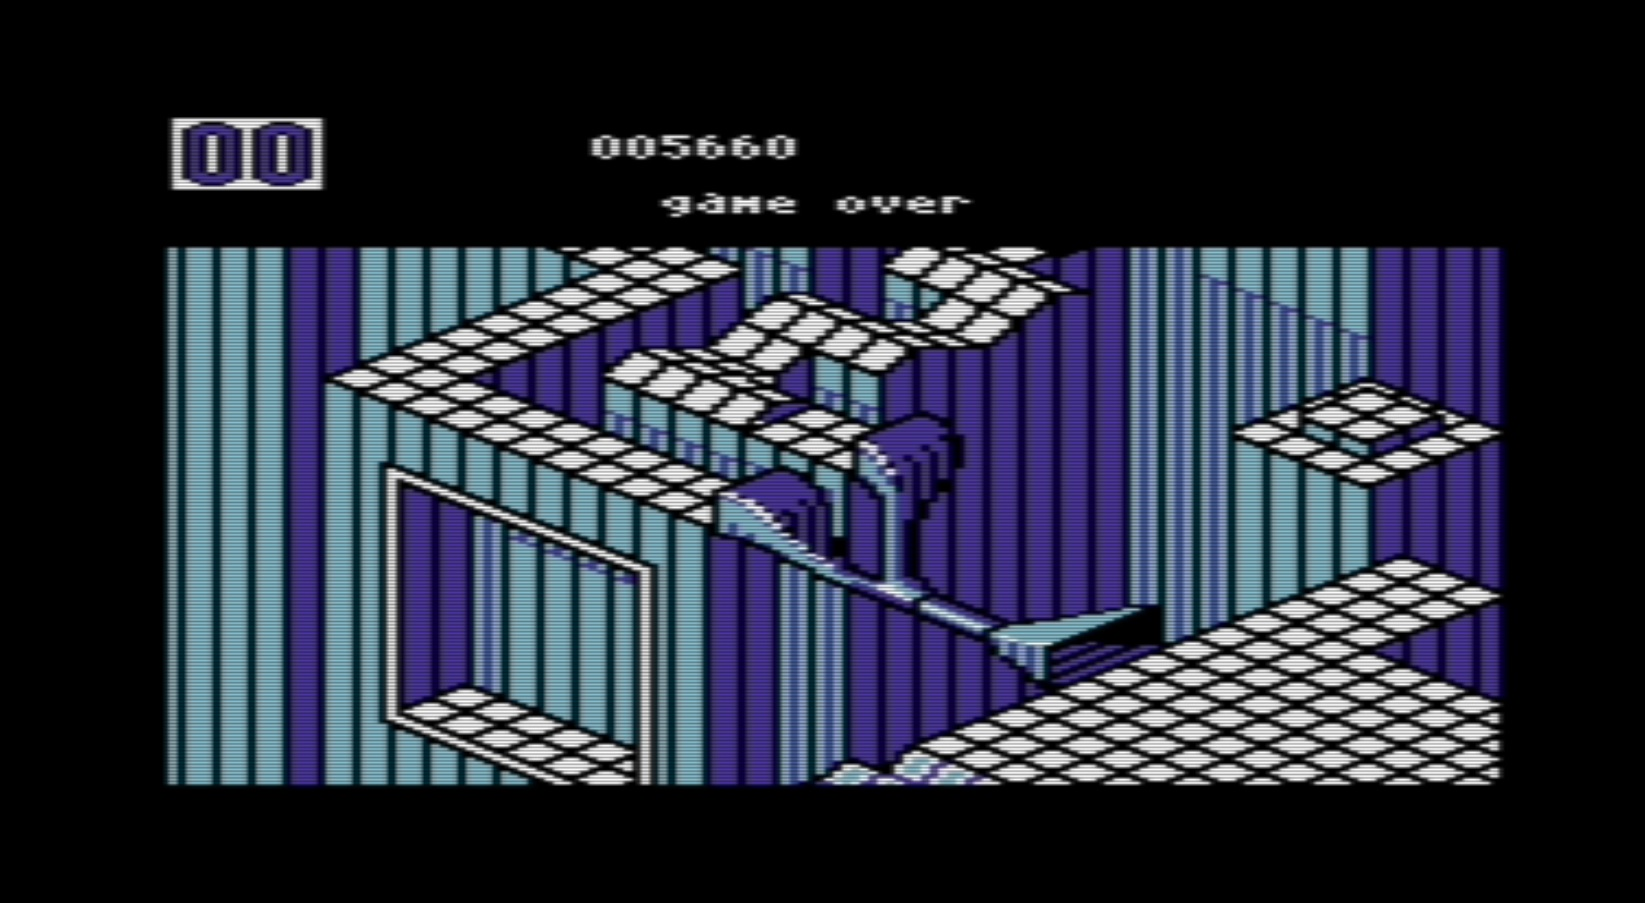 lenny2571: Marble Madness (Commodore 64 Emulated) 5,660 points on 2015-04-19 10:44:48